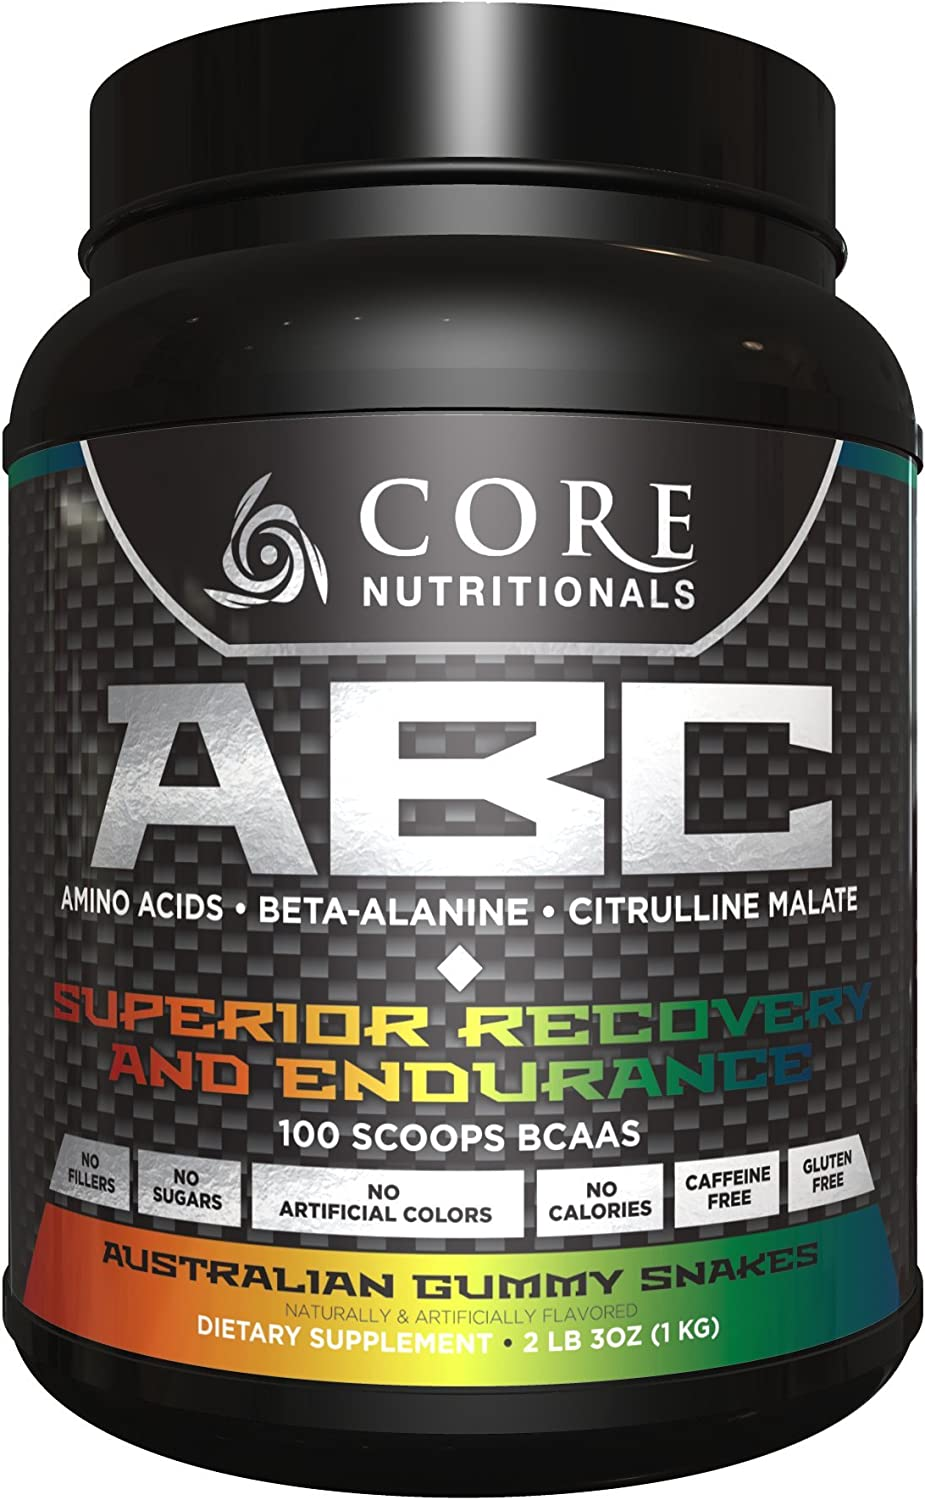 Core Nutritionals Core ABC Australian Gummy Snakes 2 lb. 3oz